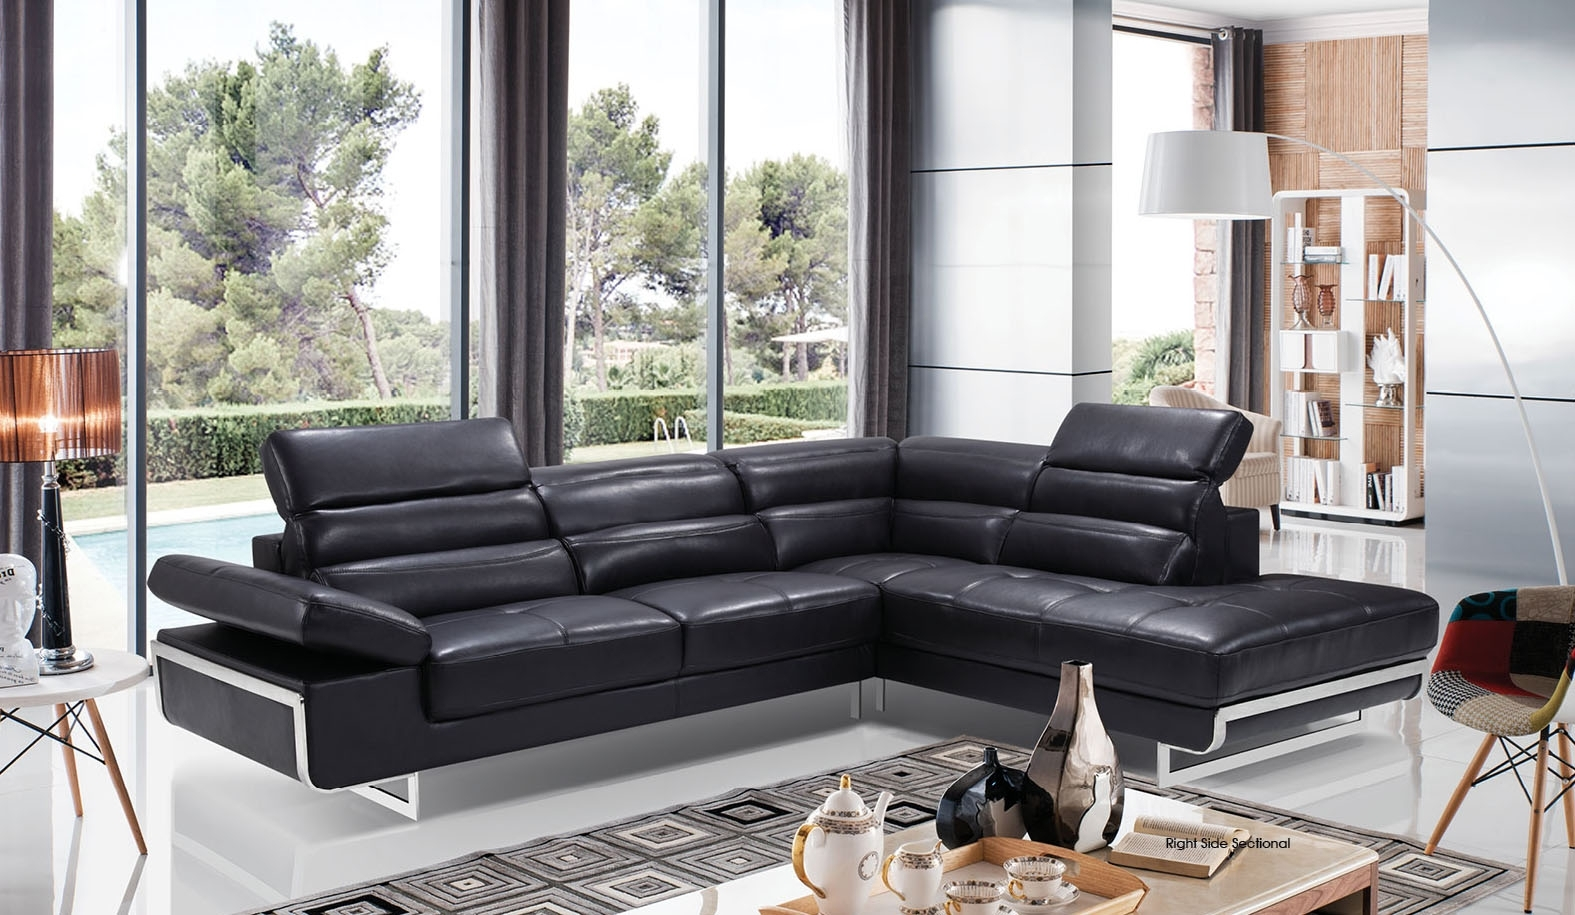 High Class Italian Leather Living Room Furniture Jacksonville For Jacksonville Fl Sectional Sofas (View 4 of 10)